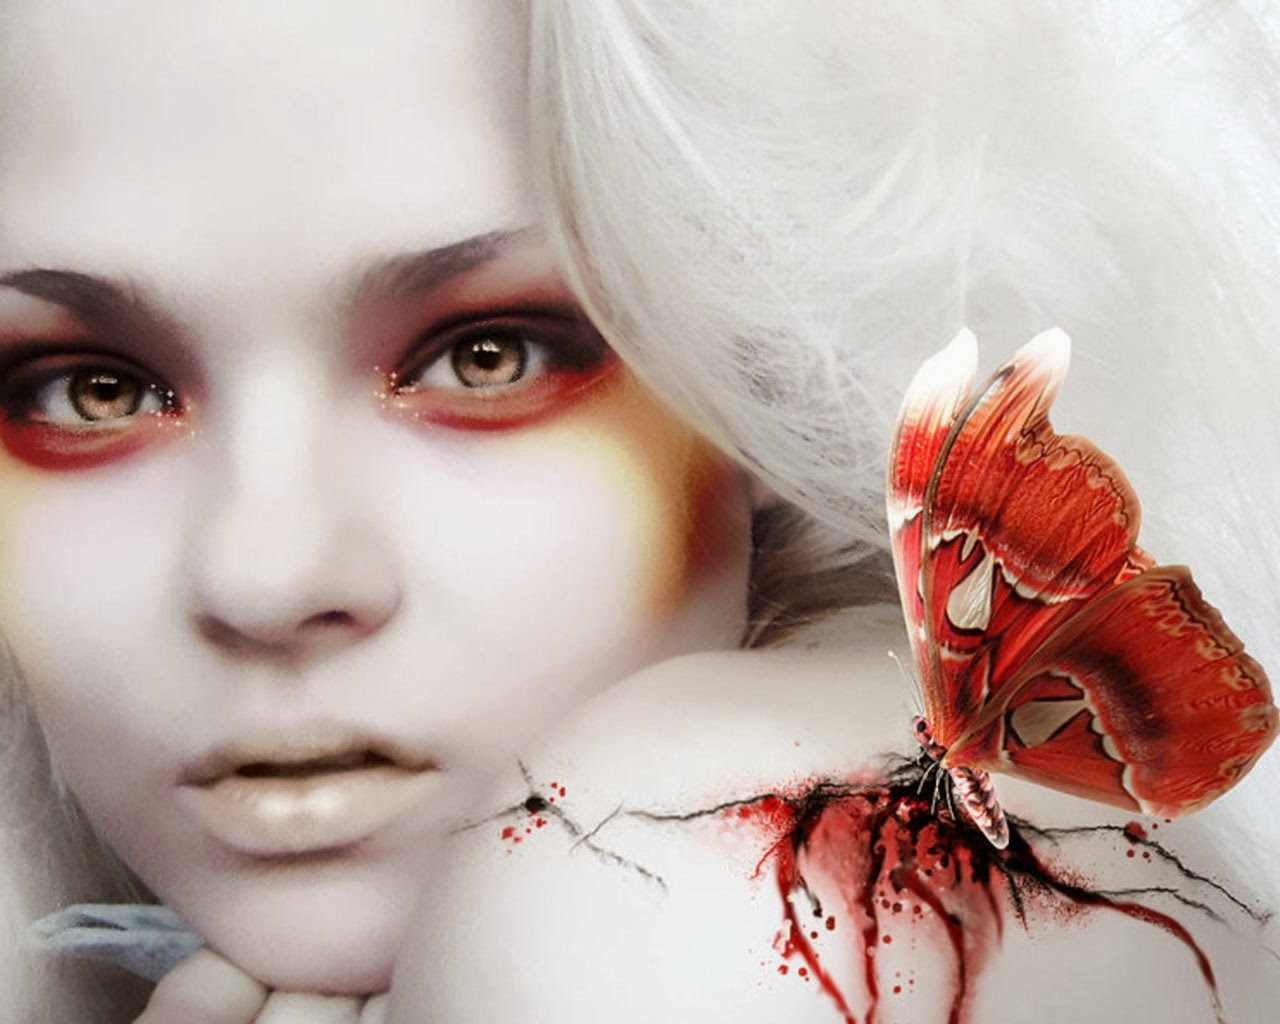 Cool Vampire Wallpapers ~ HD Wallpapers | Funny Videos | Hot Girls Photos | Amazing Wallpapers ...